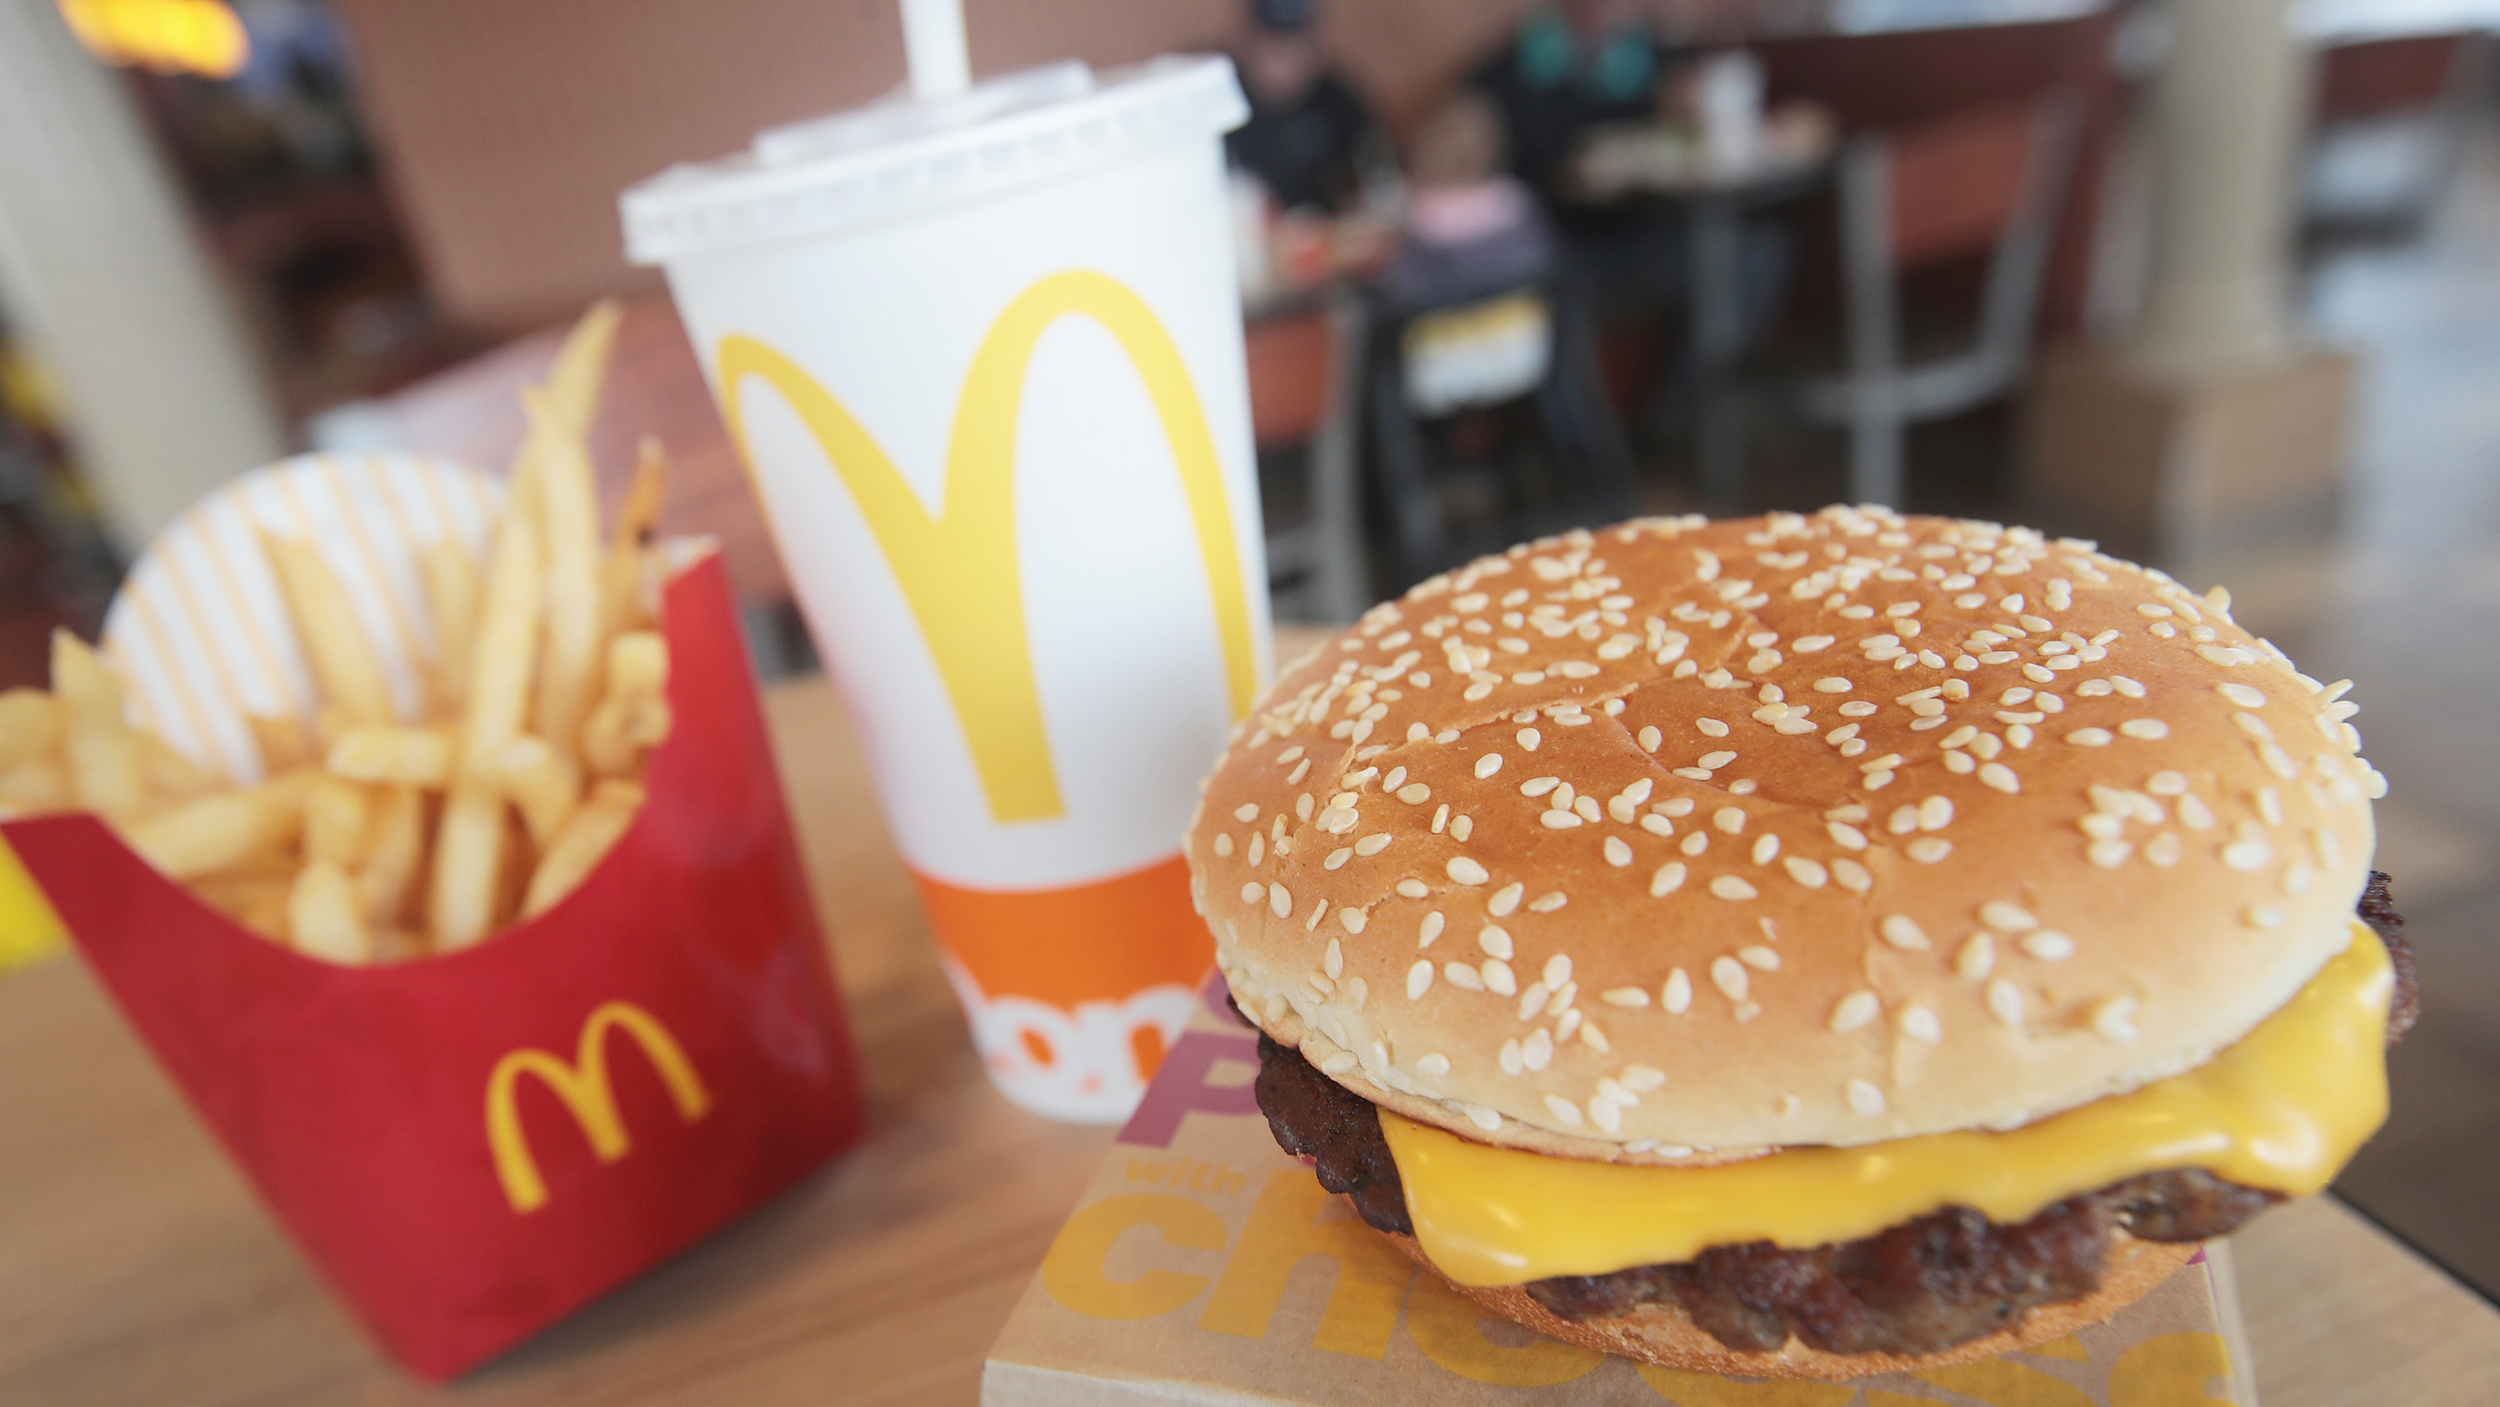 mcdonalds customer profile Mcdonald's still has to solve one huge problem but a recent survey by the american customer satisfaction index (acsi) shows mcdonald's still has a long way to go in one area: public perception.